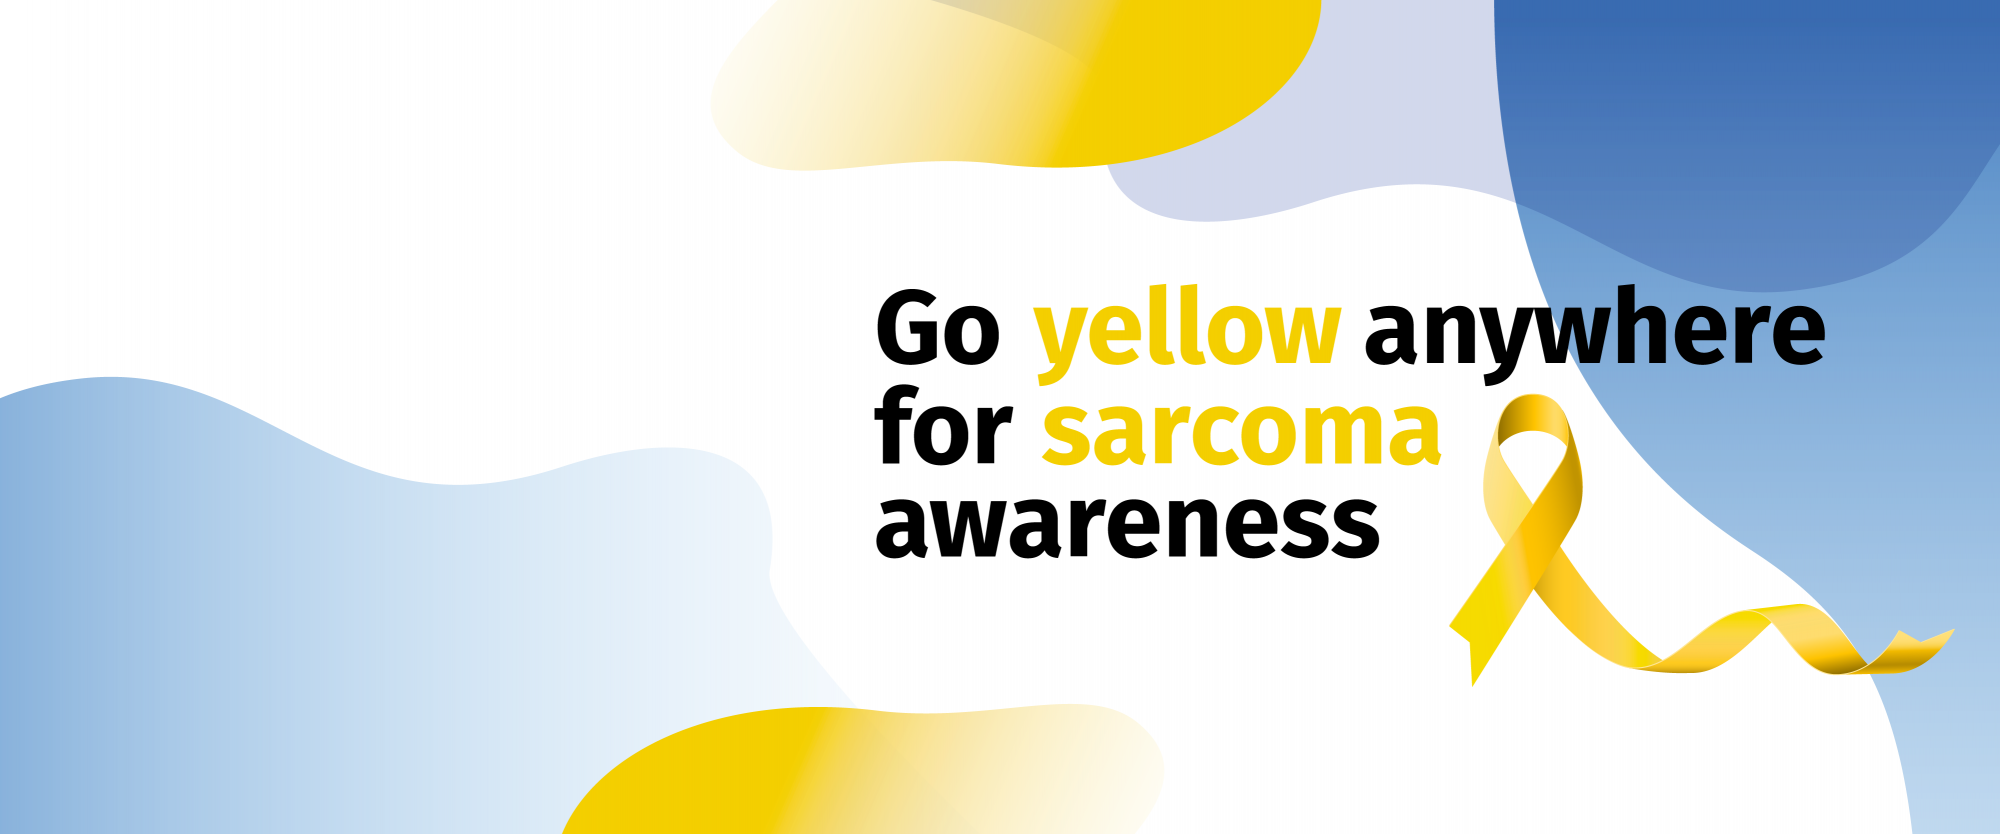 July is Sarcoma Awareness Month!